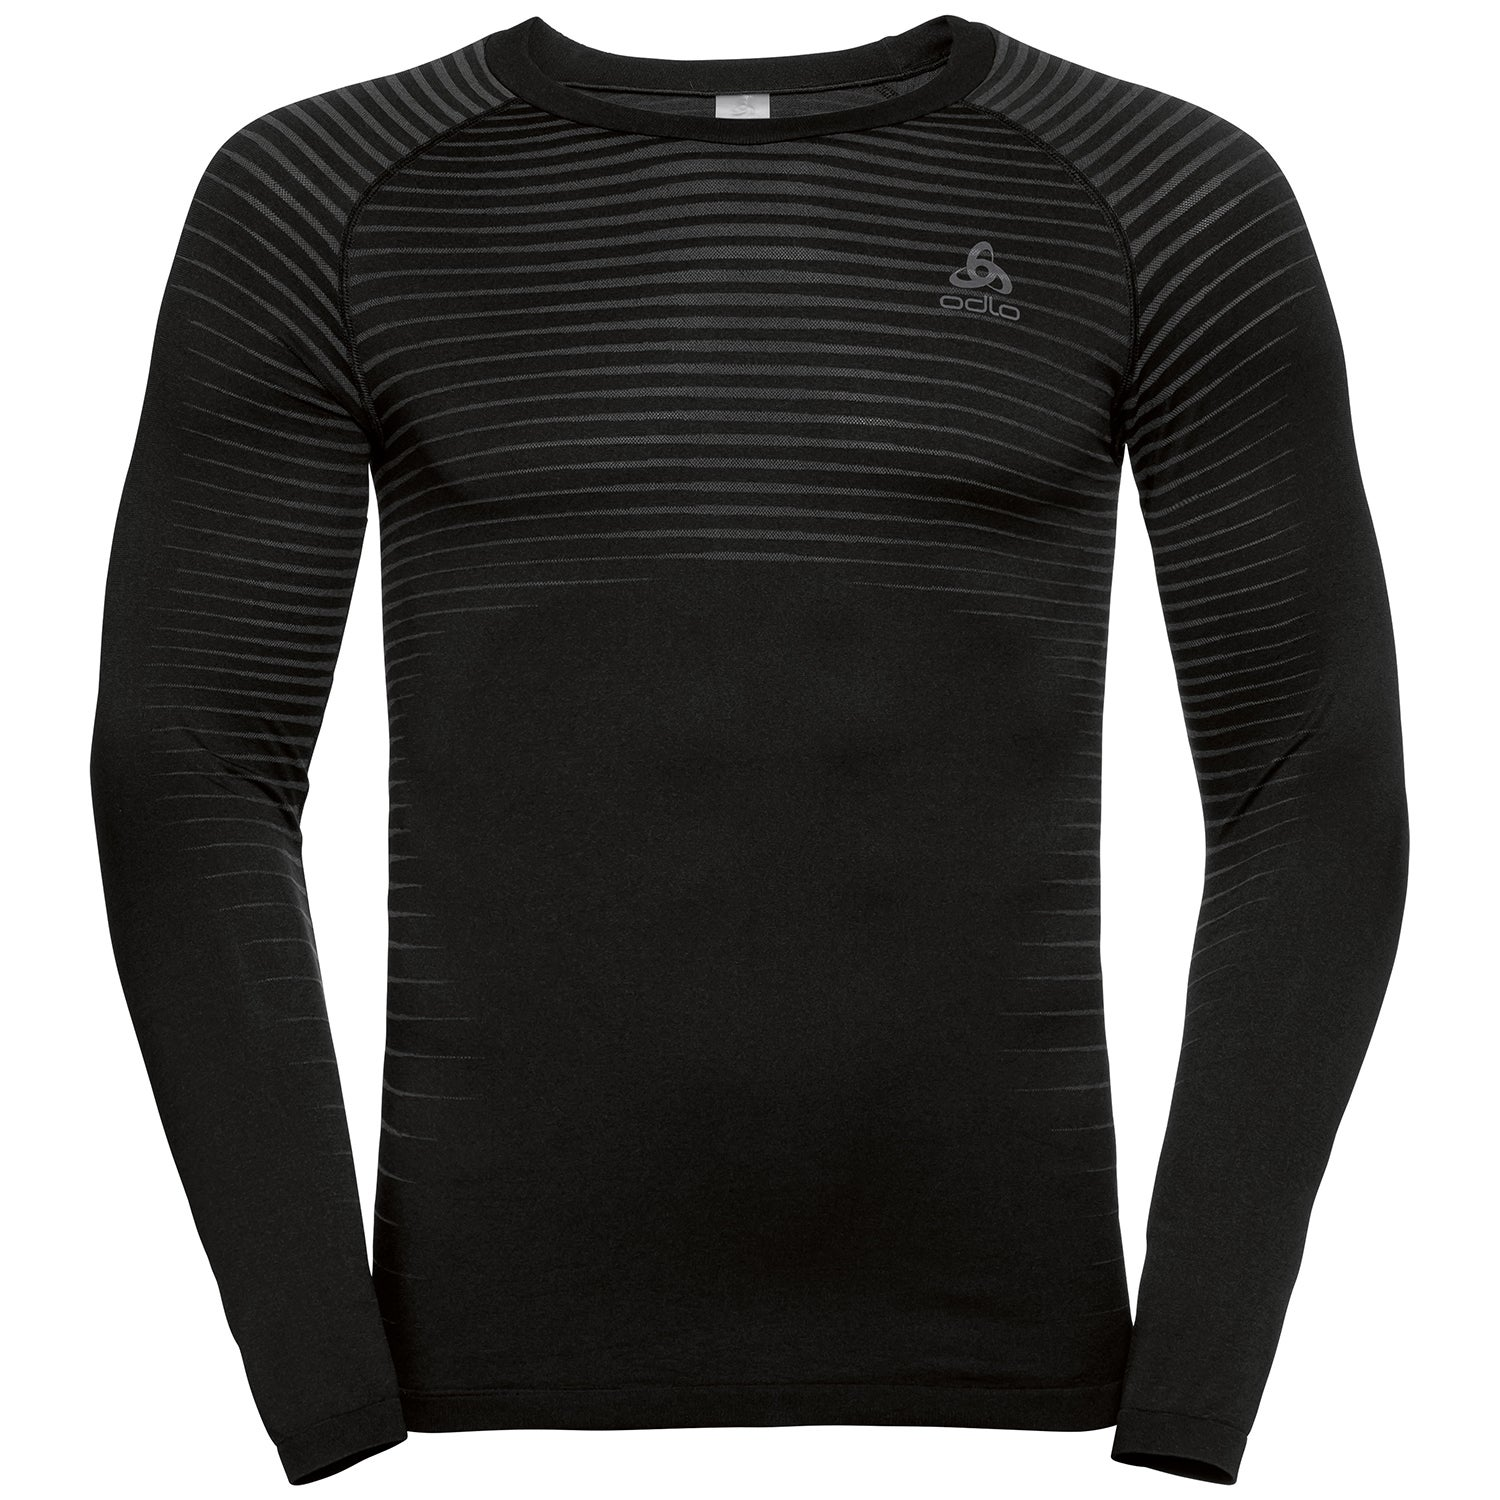 Odlo Mens BL Ceramicool Pro Long Sleeve Crew Neck Top